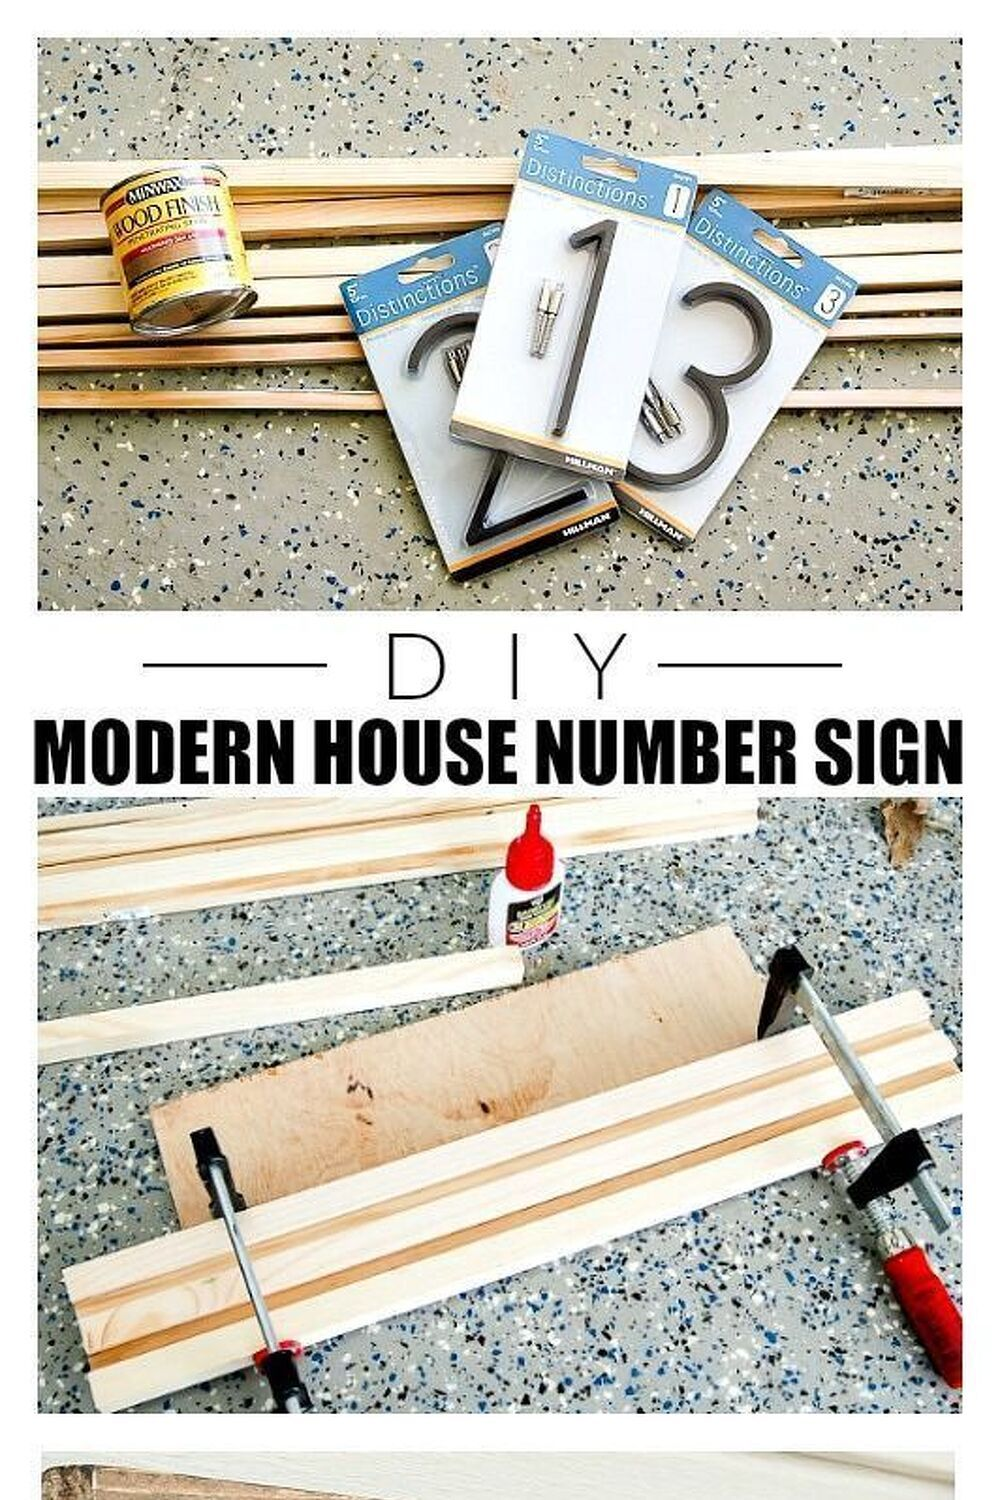 How to Make a Modern House Number Sign How to make a modern house number sign from square dowels. #diyhousenumber #curbappeal #frontporch #porchdecor #diy Build – Fix – Do#Modern #House #Number #Sign Source by uglyducklingdiy